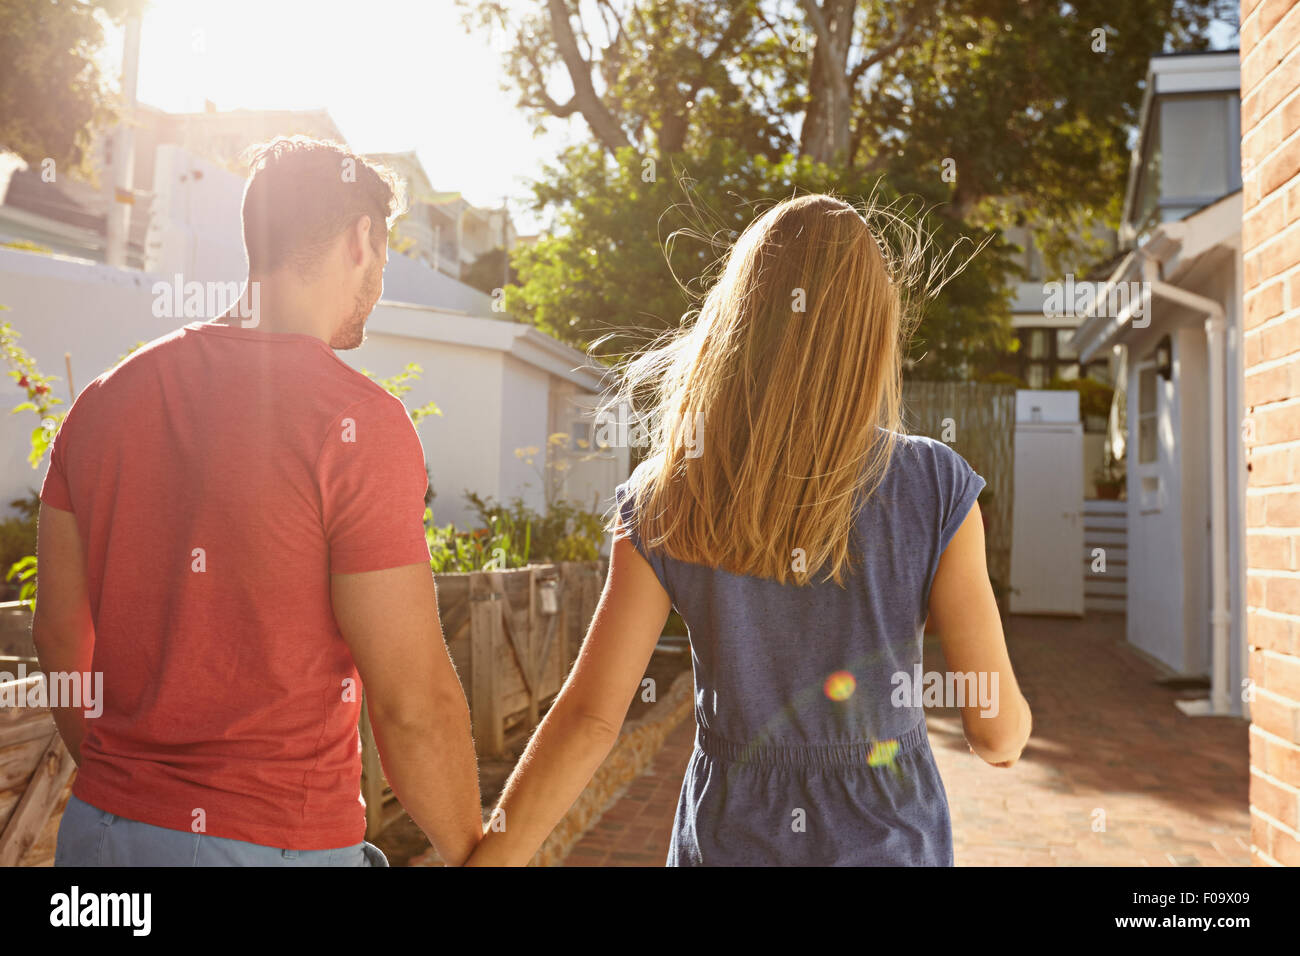 Rear view of young couple walking at their house together. Couple in backyard taking walk on a bright sunny day. - Stock Image